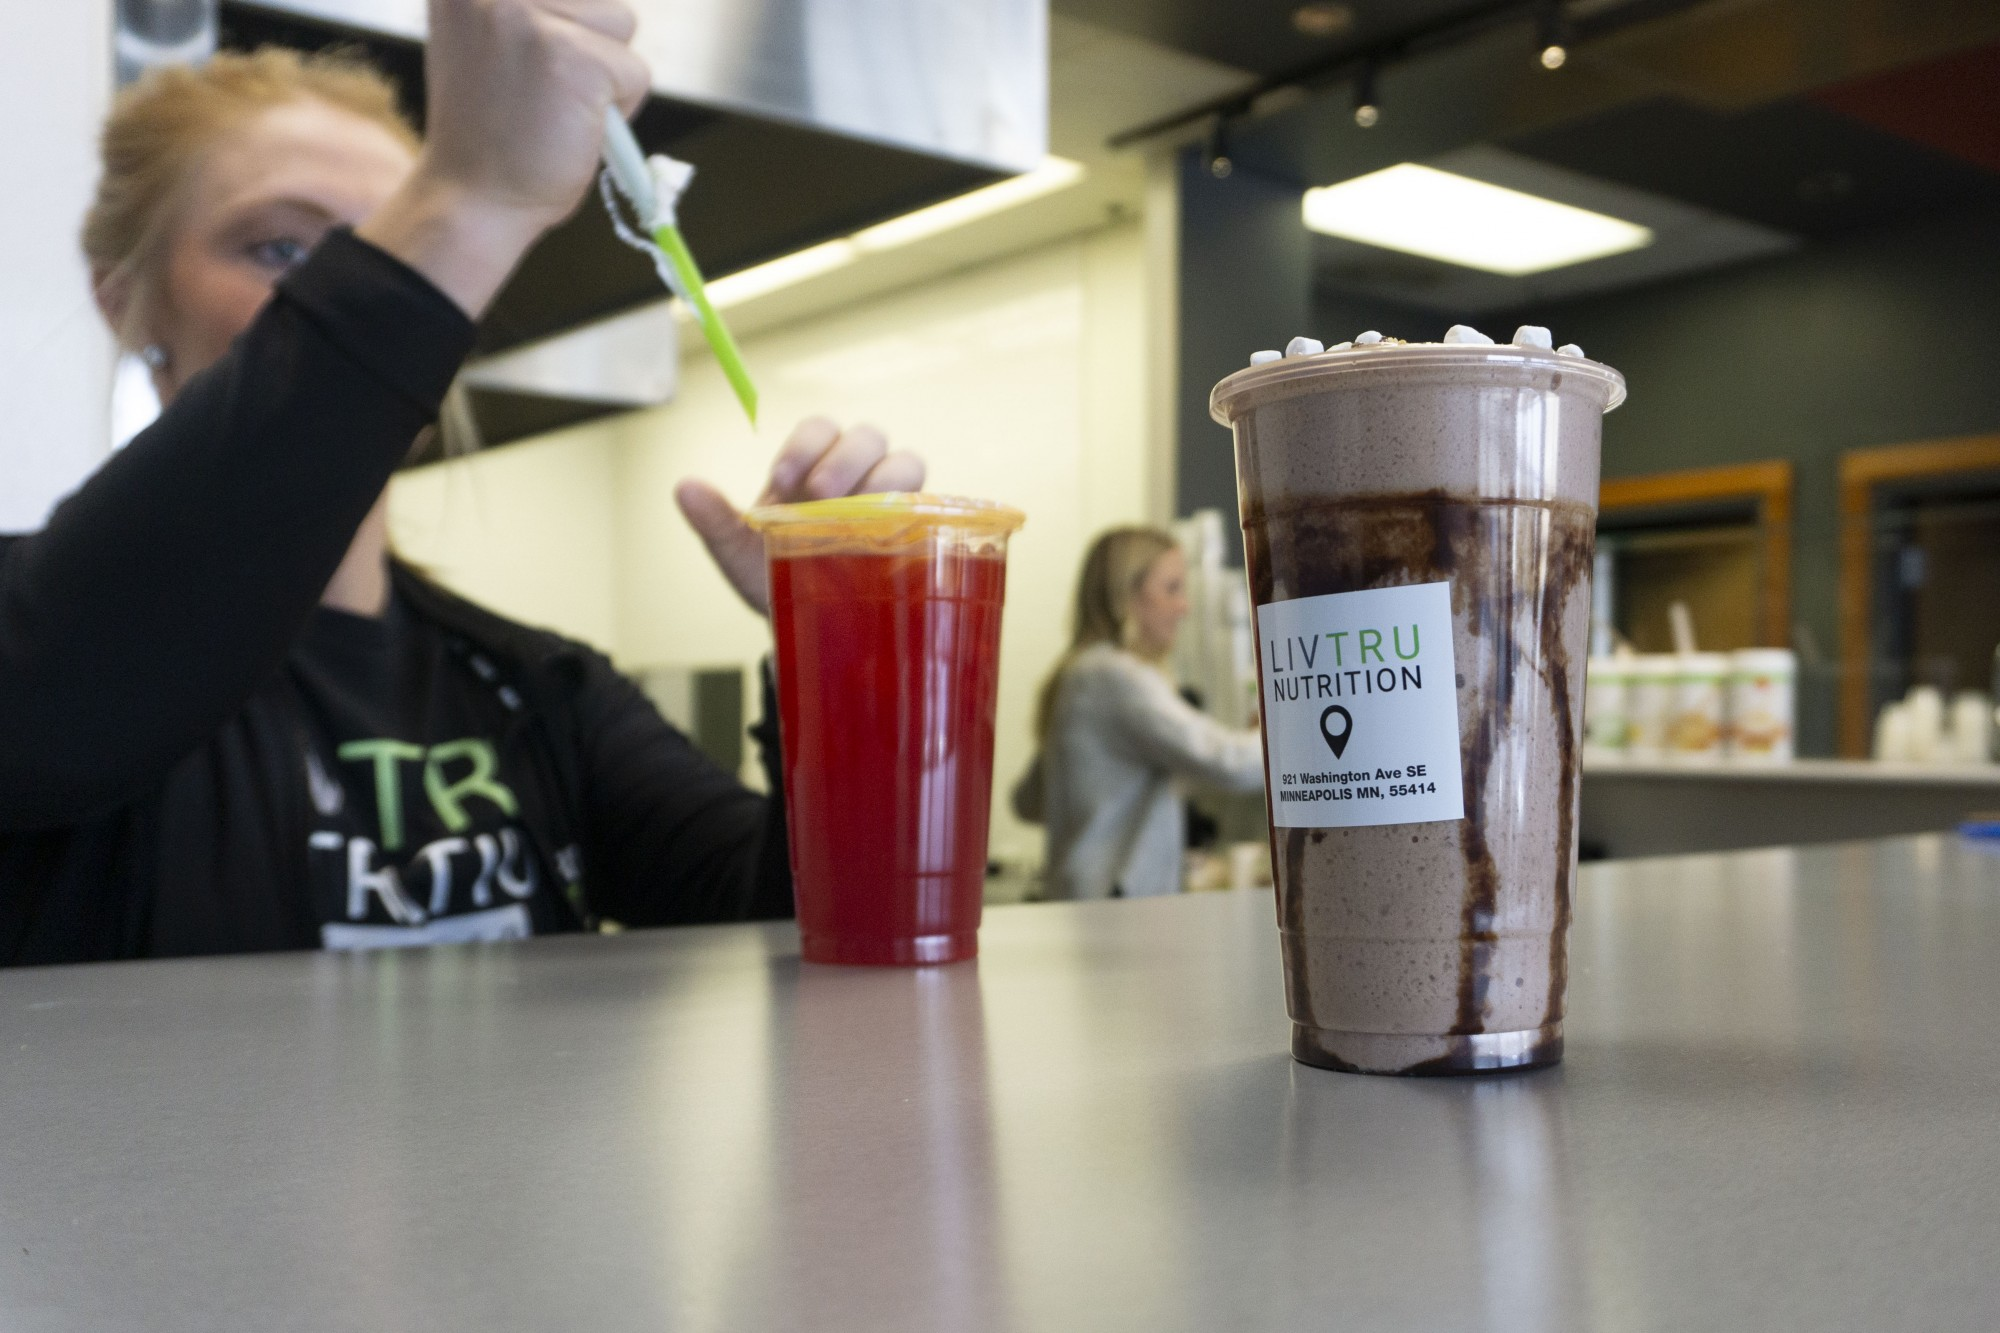 Olivia Wolbert, owner of the newly opened Liv Tru Nutrition, serves tea to a customer on Wednesday, Oct 30.